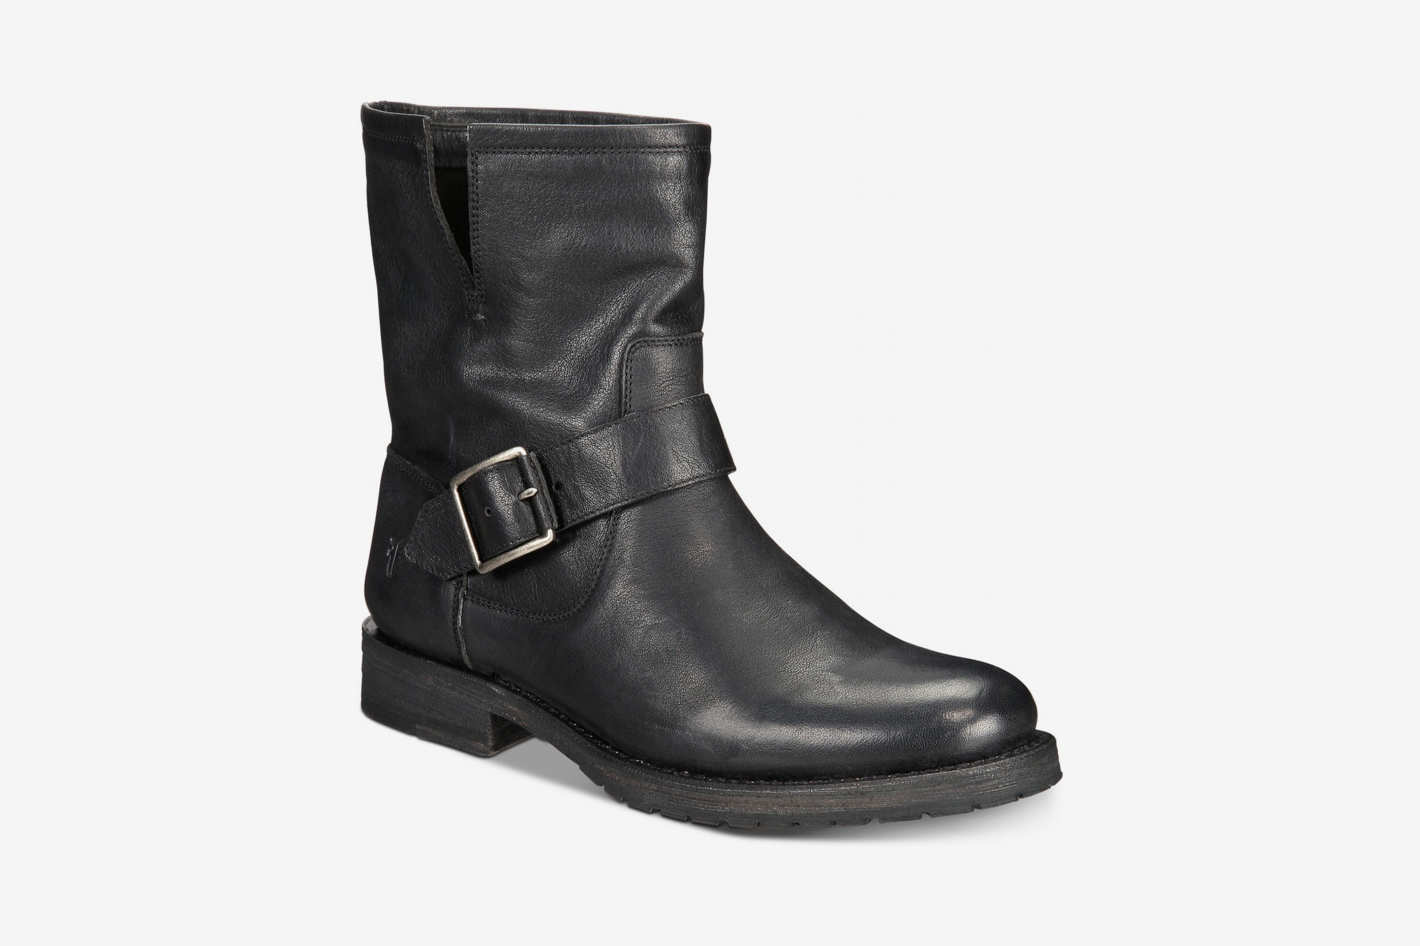 a1604b9c282f 11 Best Women s Boots and Chelsea Boots for Wide Feet 2018